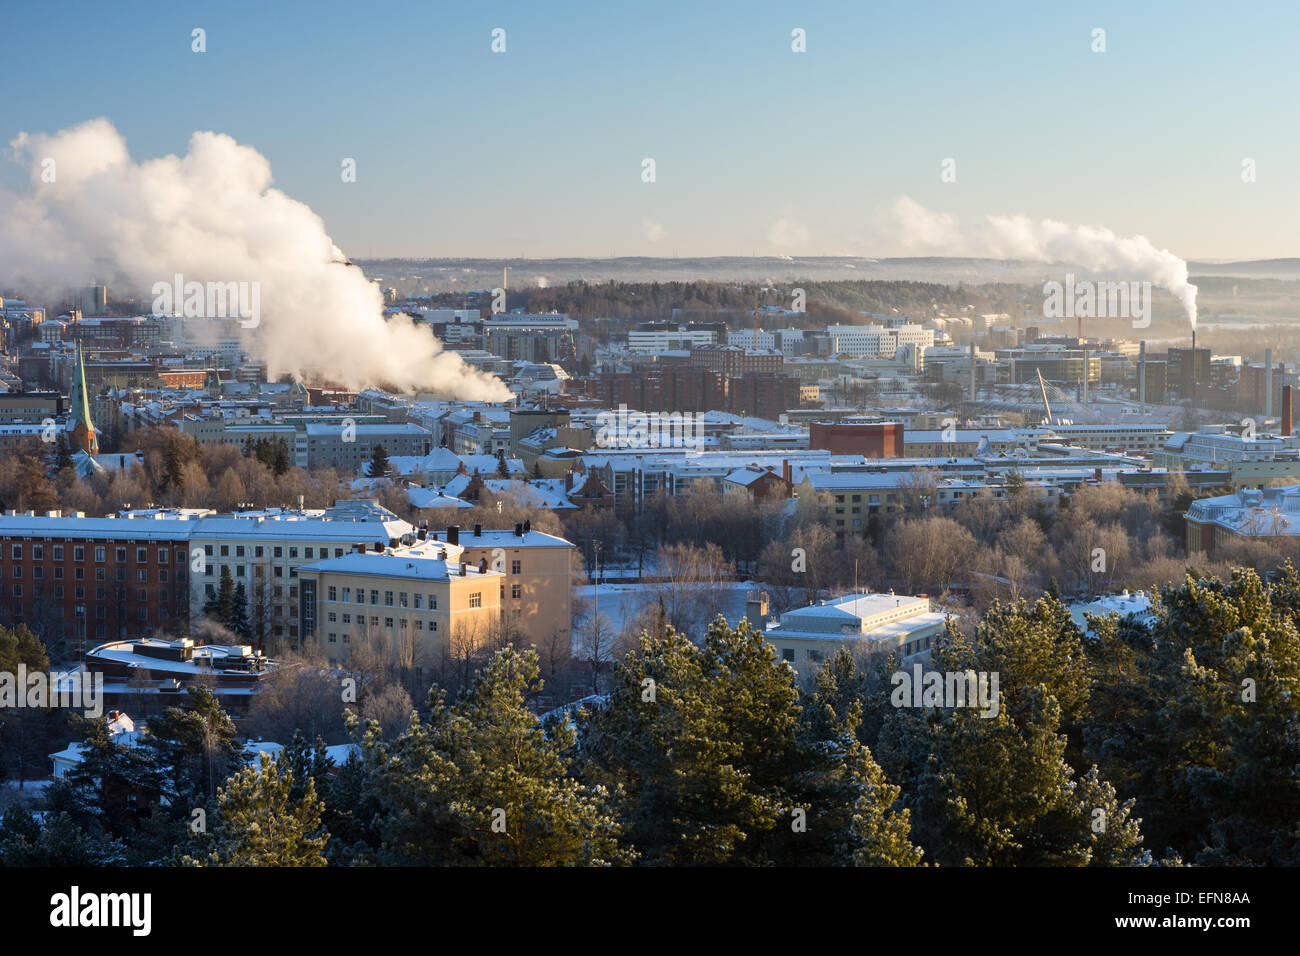 View over the city of Tampere, Finland in the winter in daylight Stock Photo